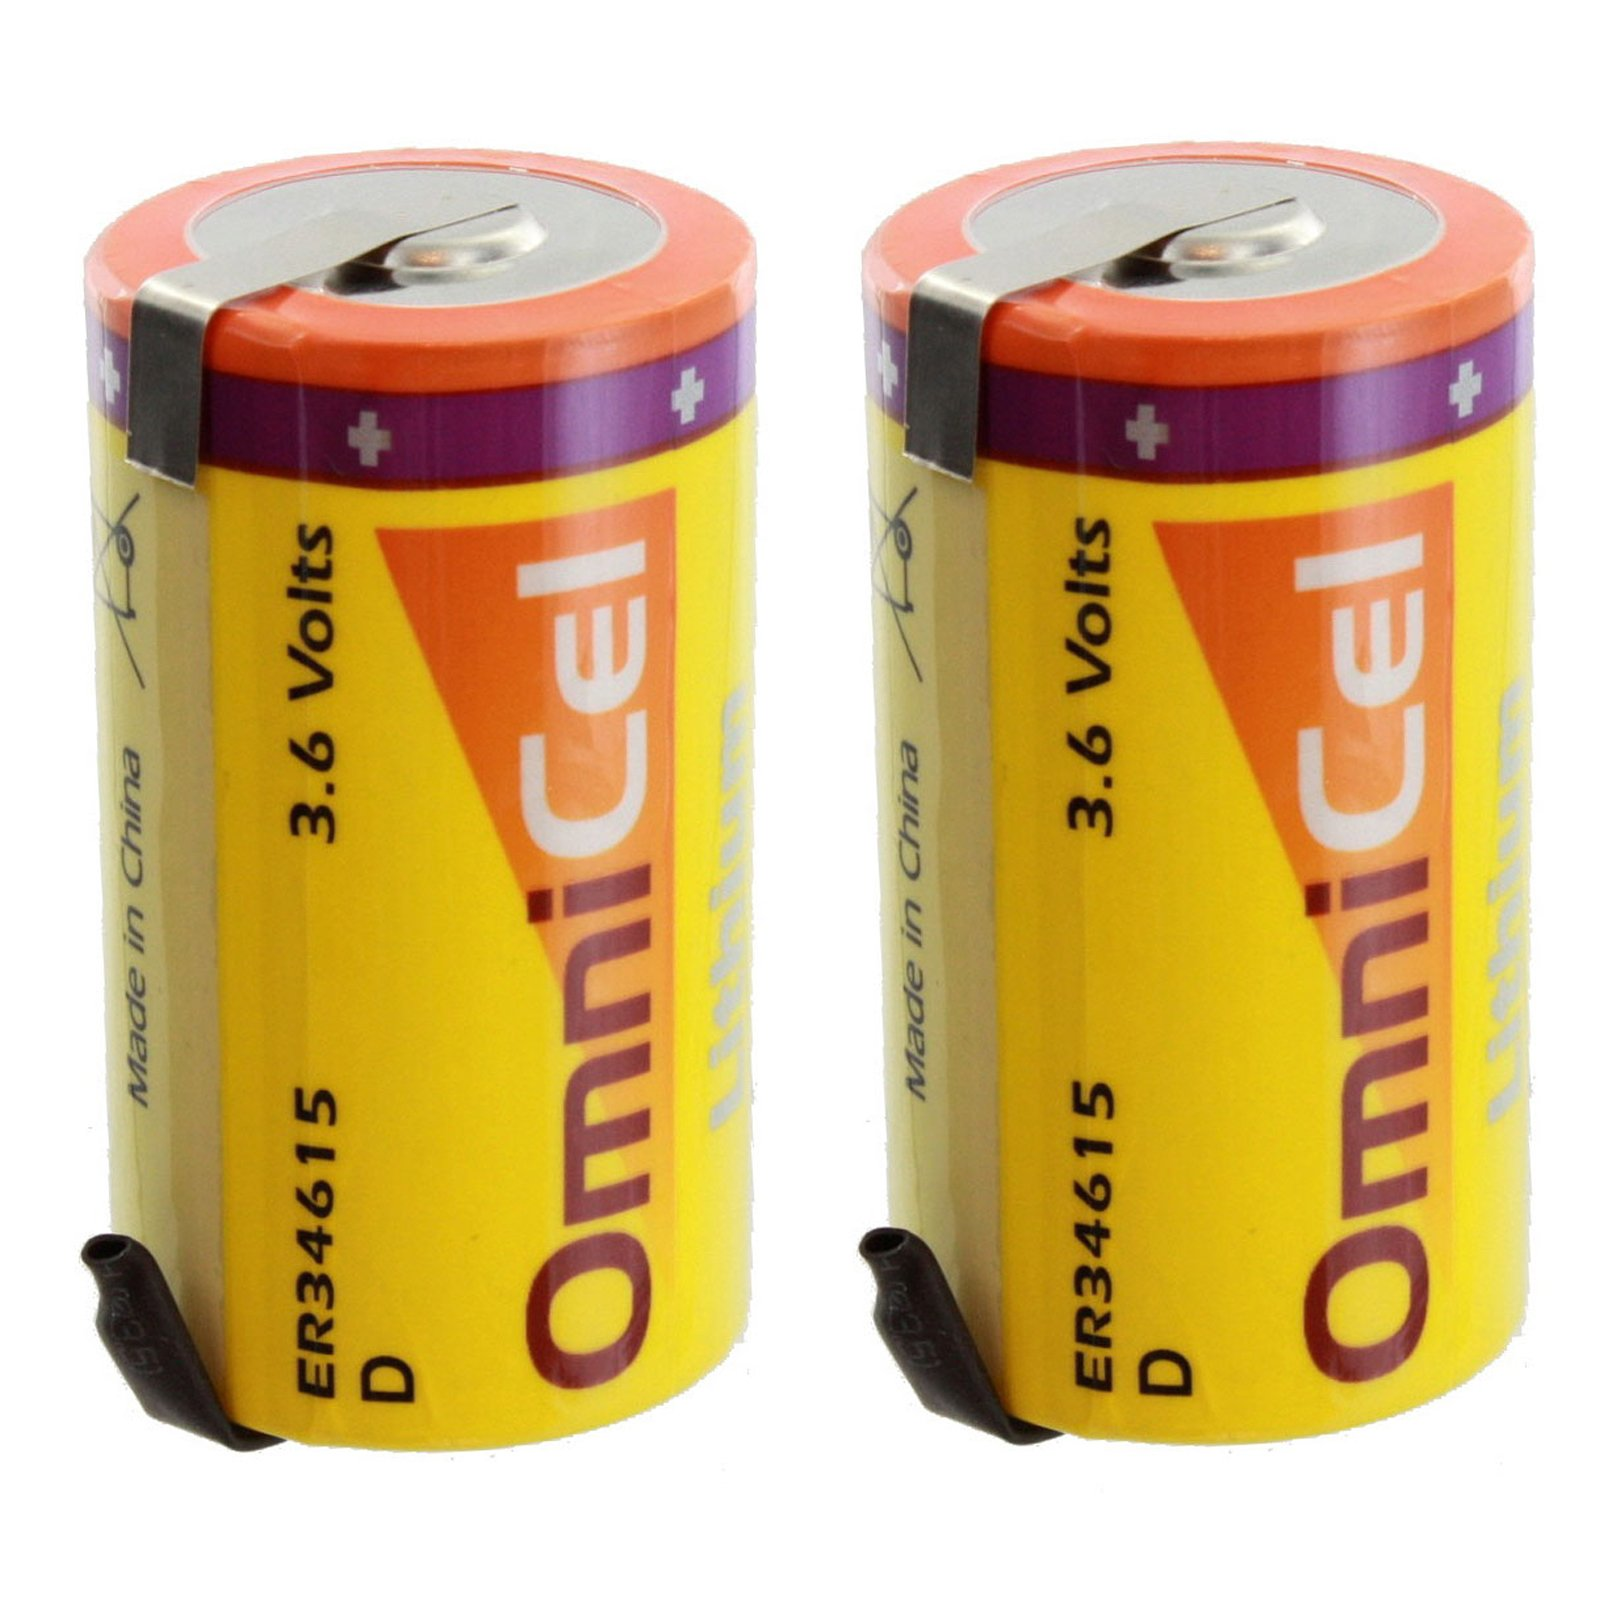 2x OmniCel ER34615 3.6 Volt 19 Ah D High Energy Lithium Battery with Tabs For Tracking Buoys, Location GPS, GSM, ARGOS, Signal lamp,Earthquake tester, Numerical Control Tool, Taximeter